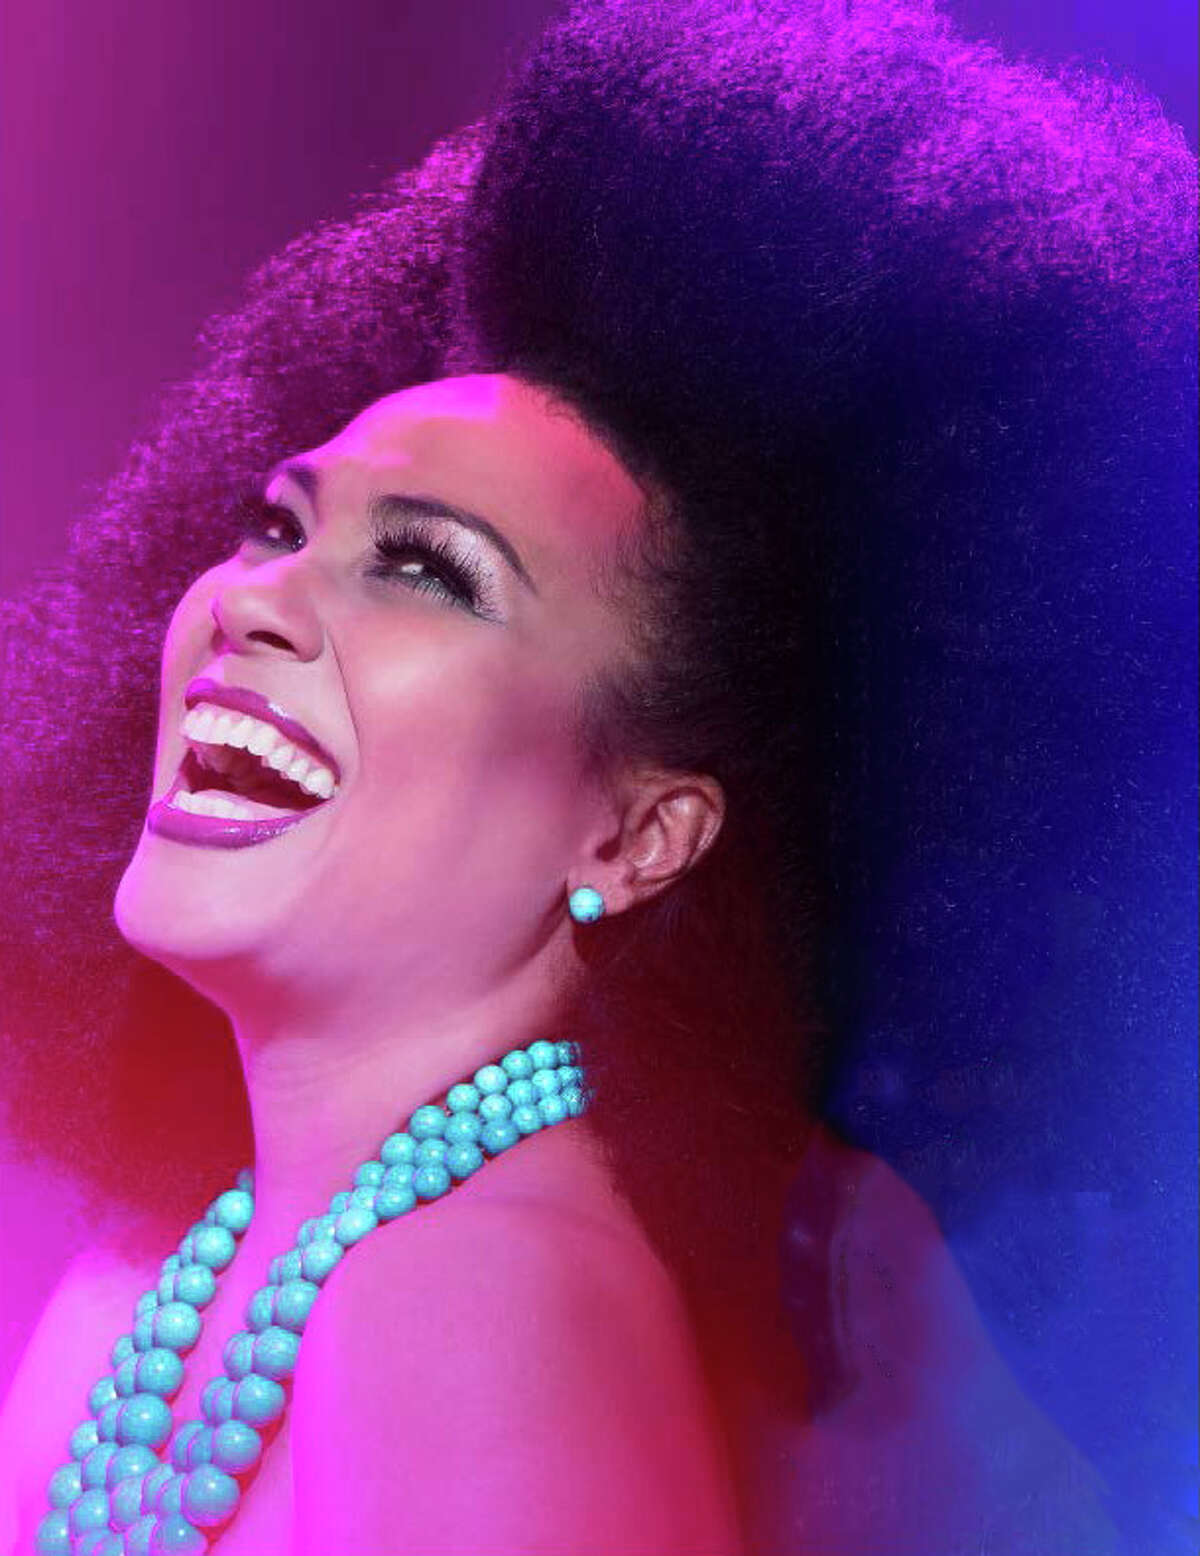 Aymee Nuviola will perform Friday at Miller Outdoor Theatre.